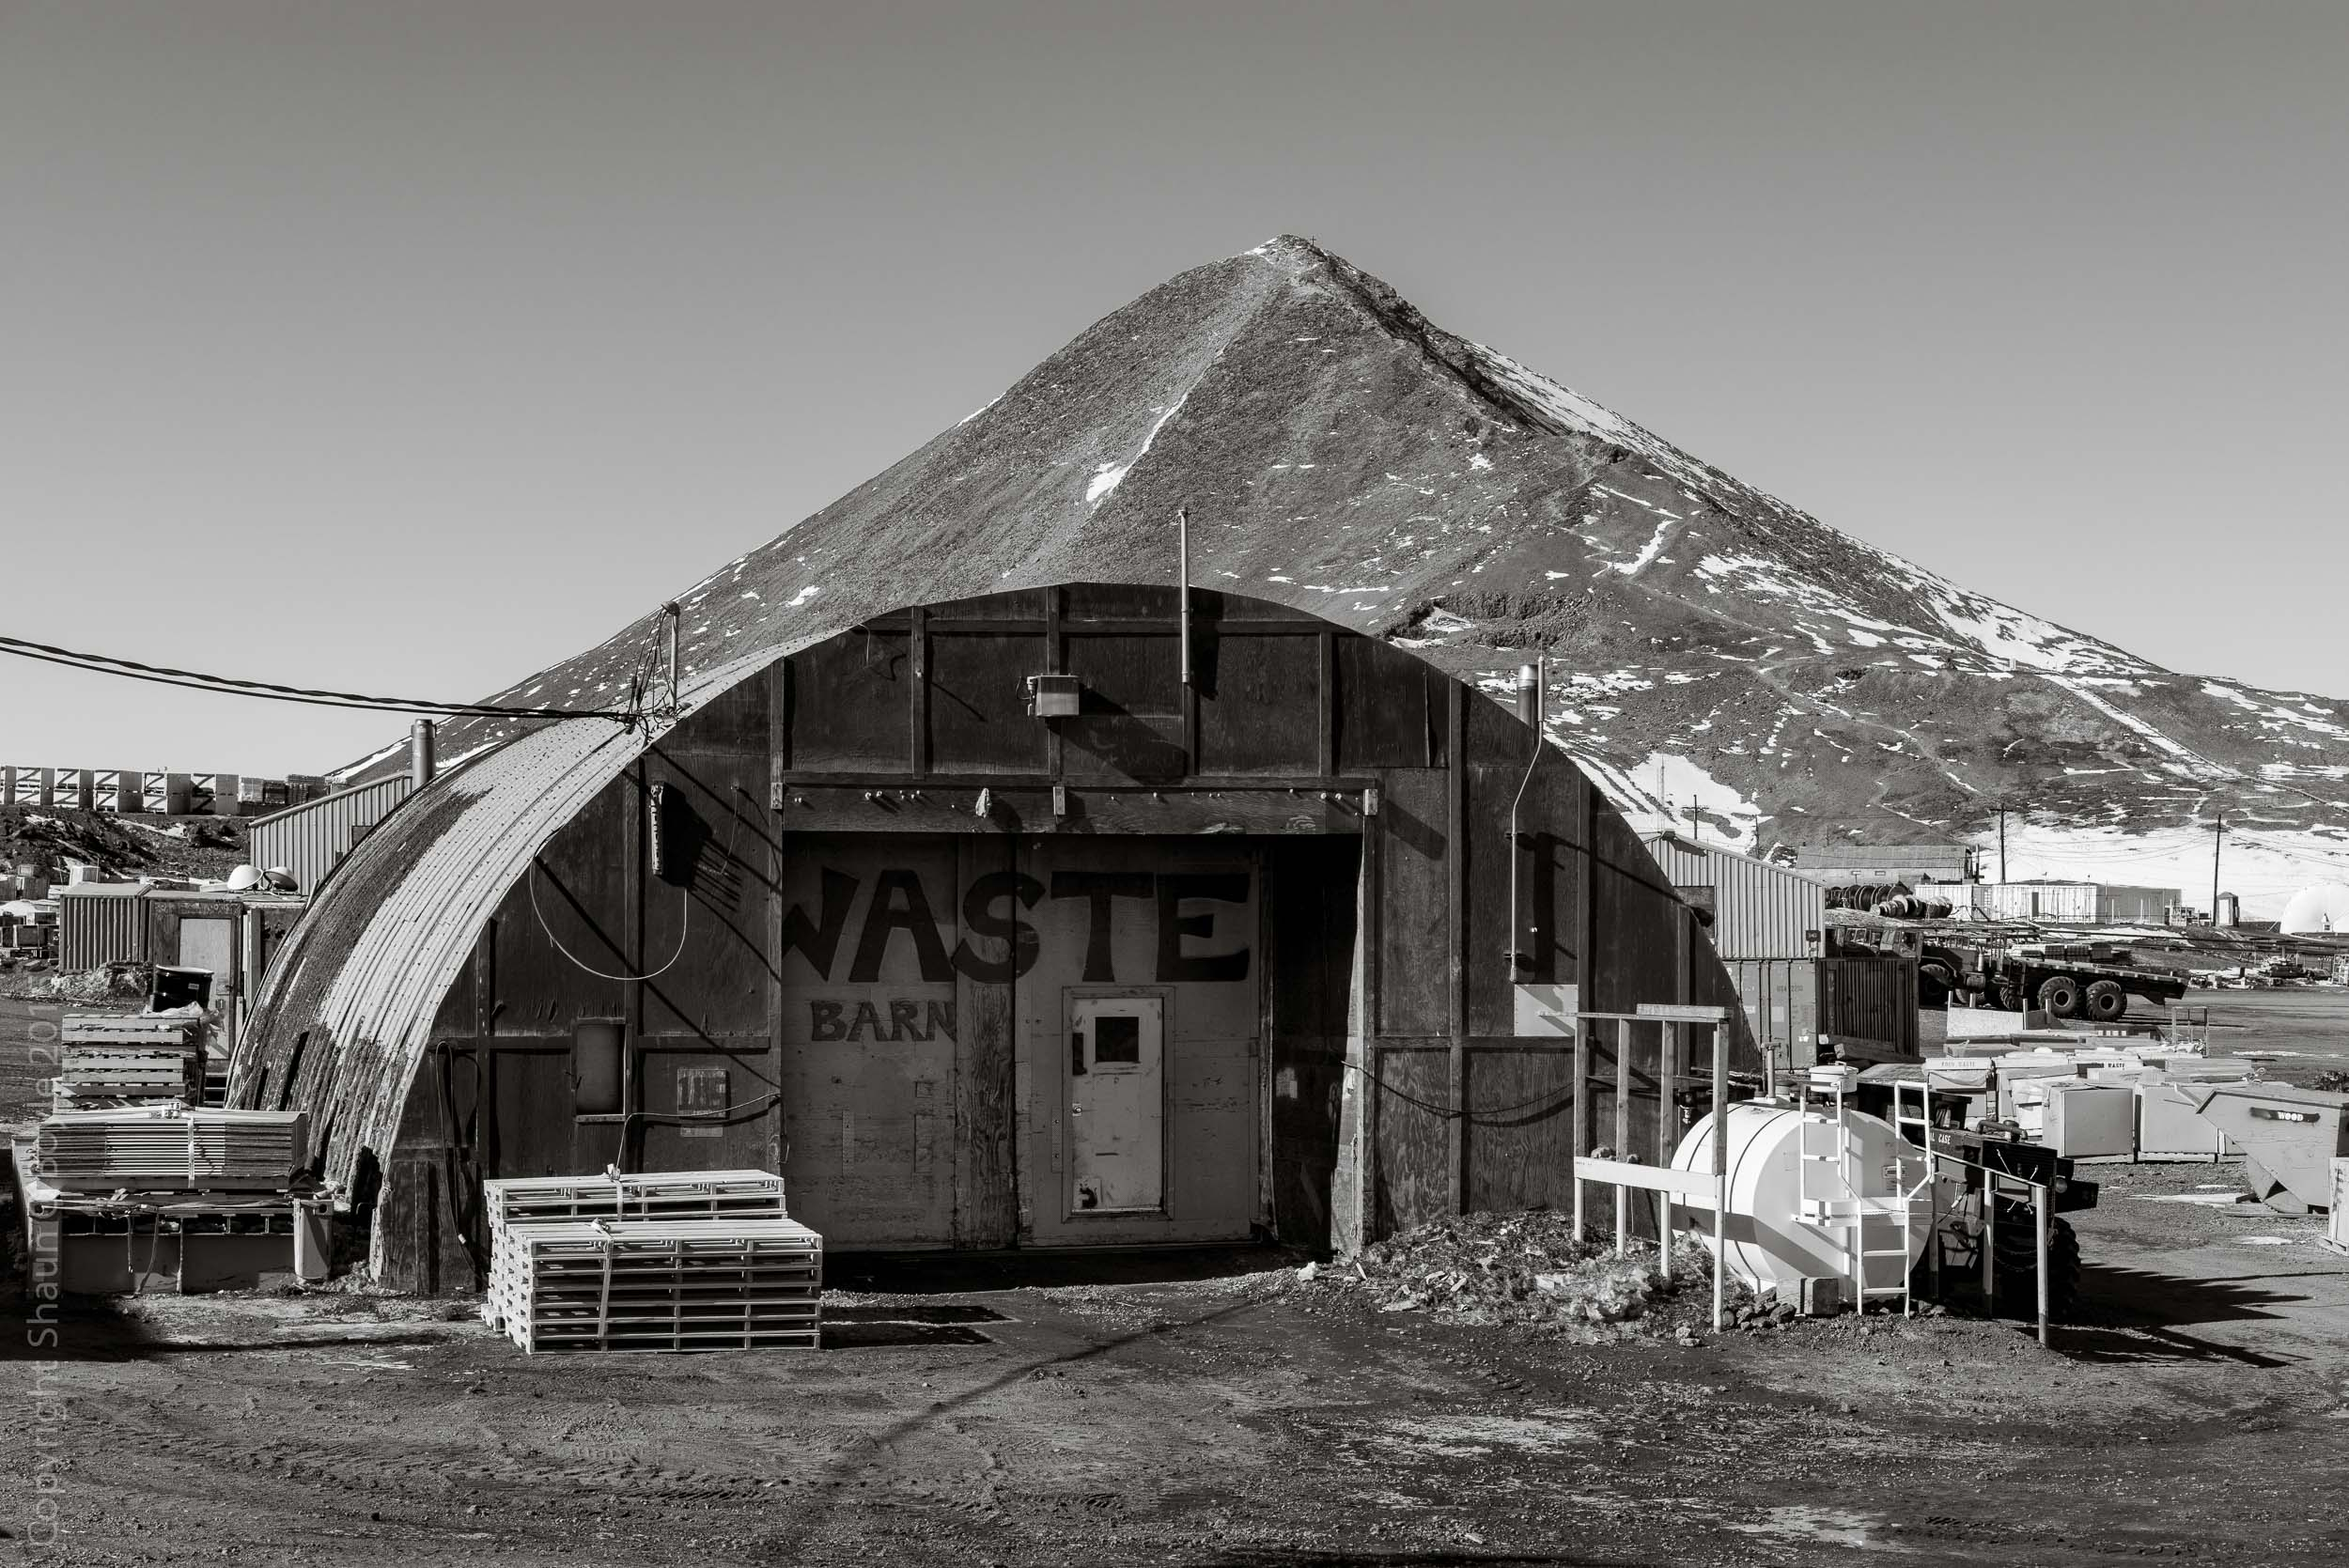 Waste Barn, the other place where it all ends up.